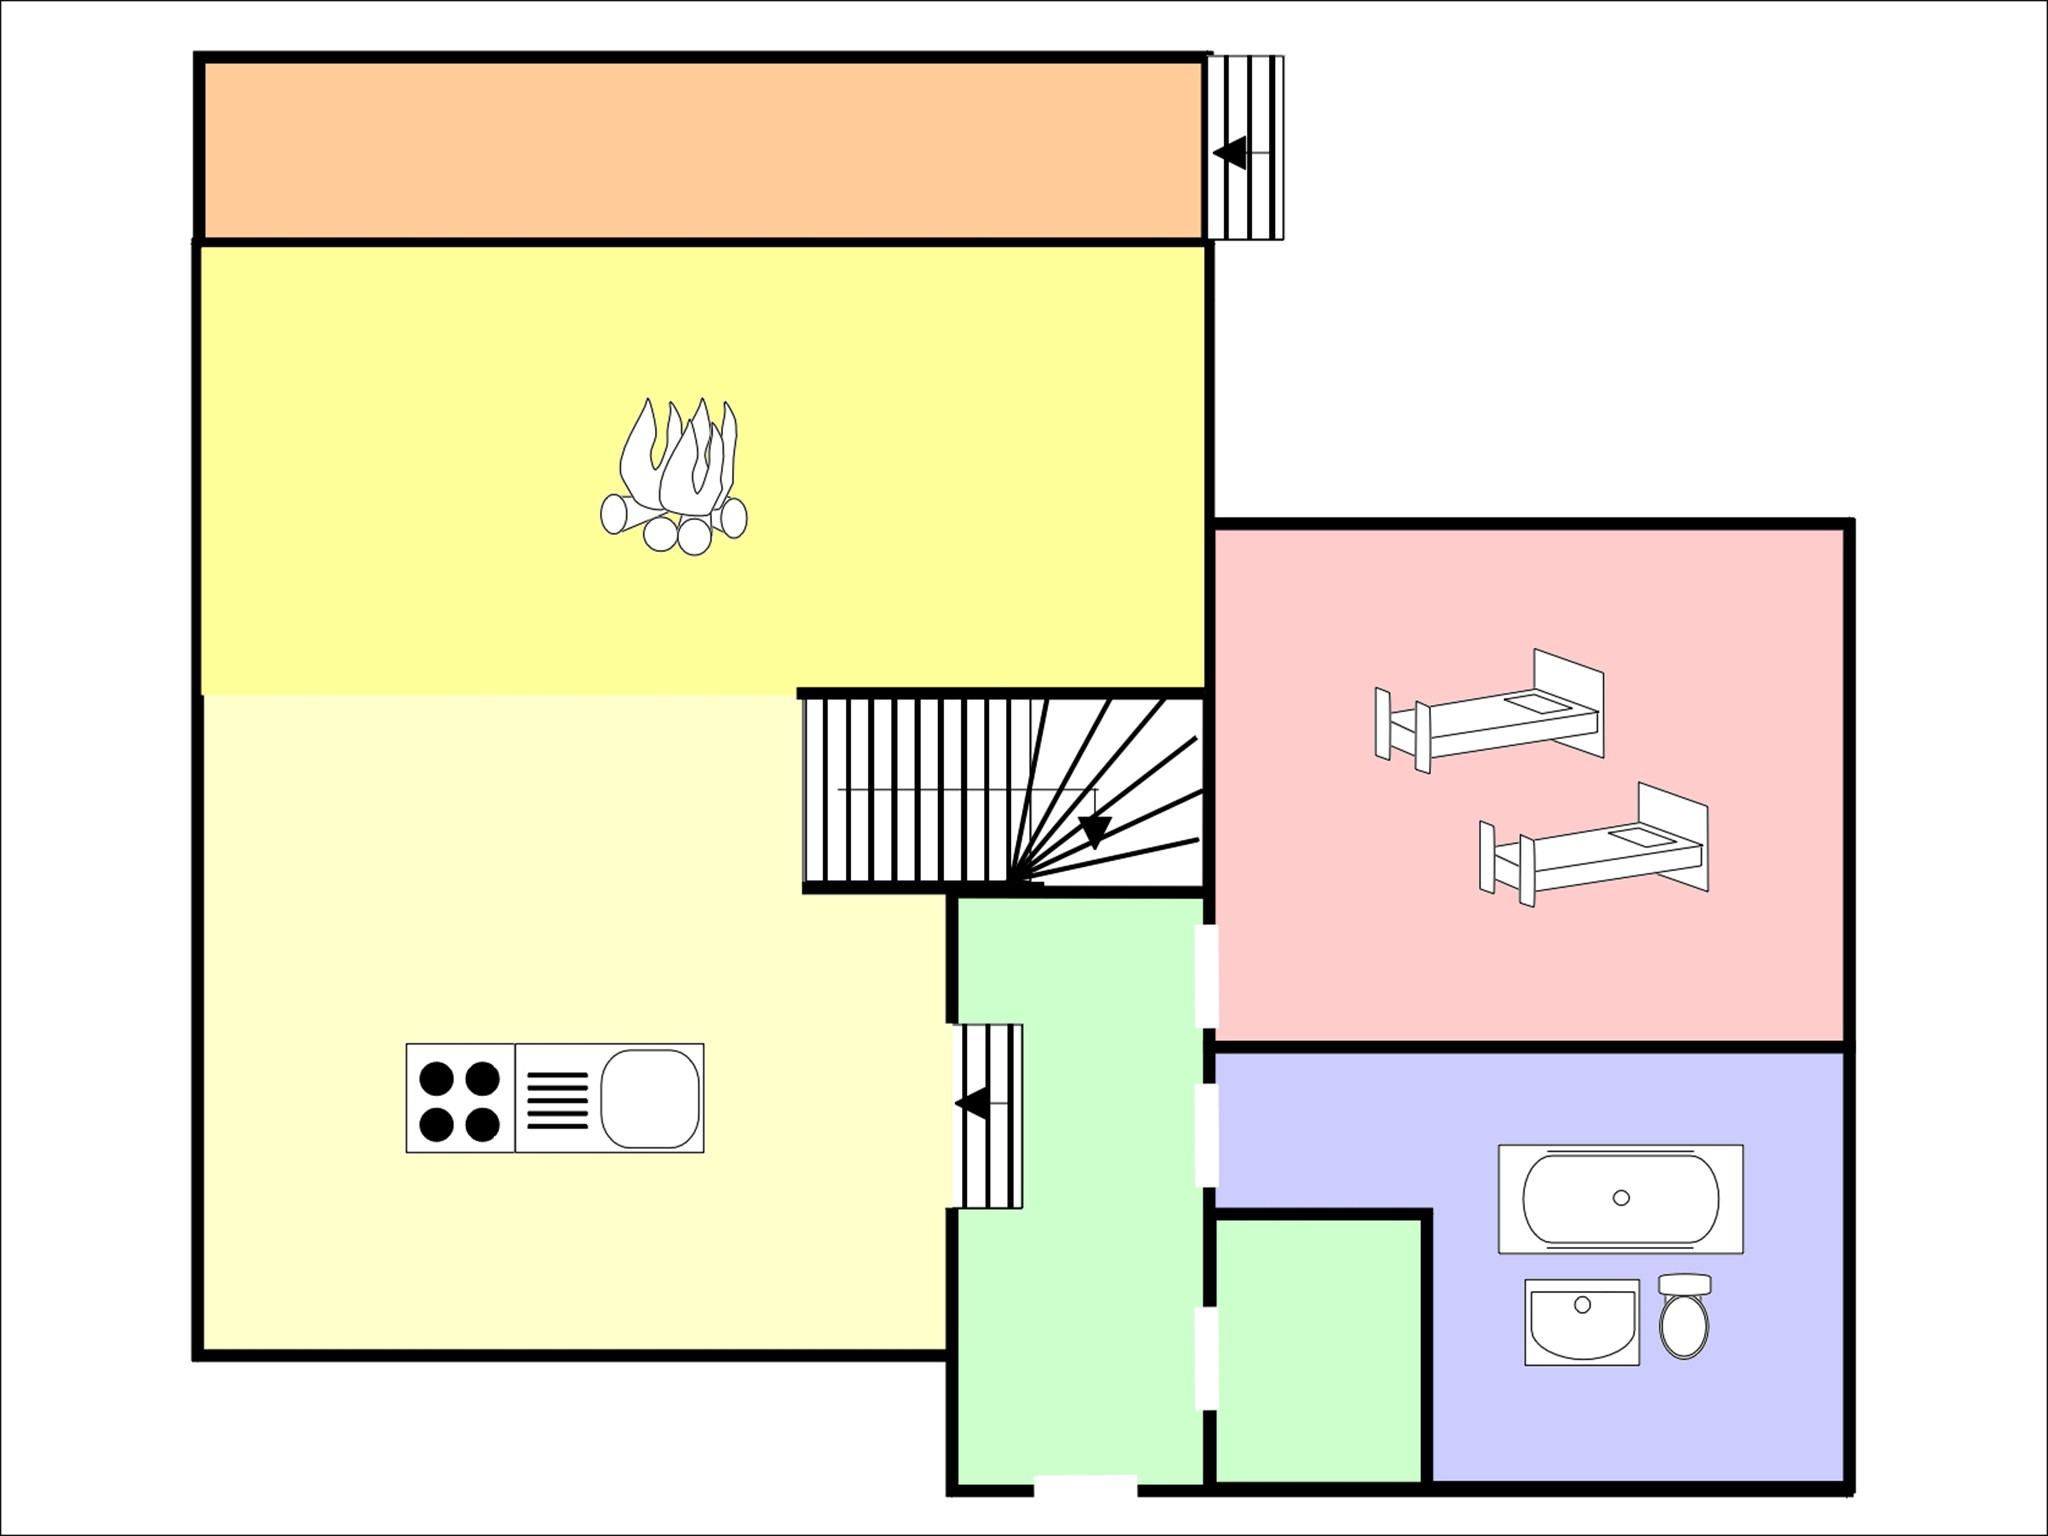 Chalet Bryher - floor plan - level 1